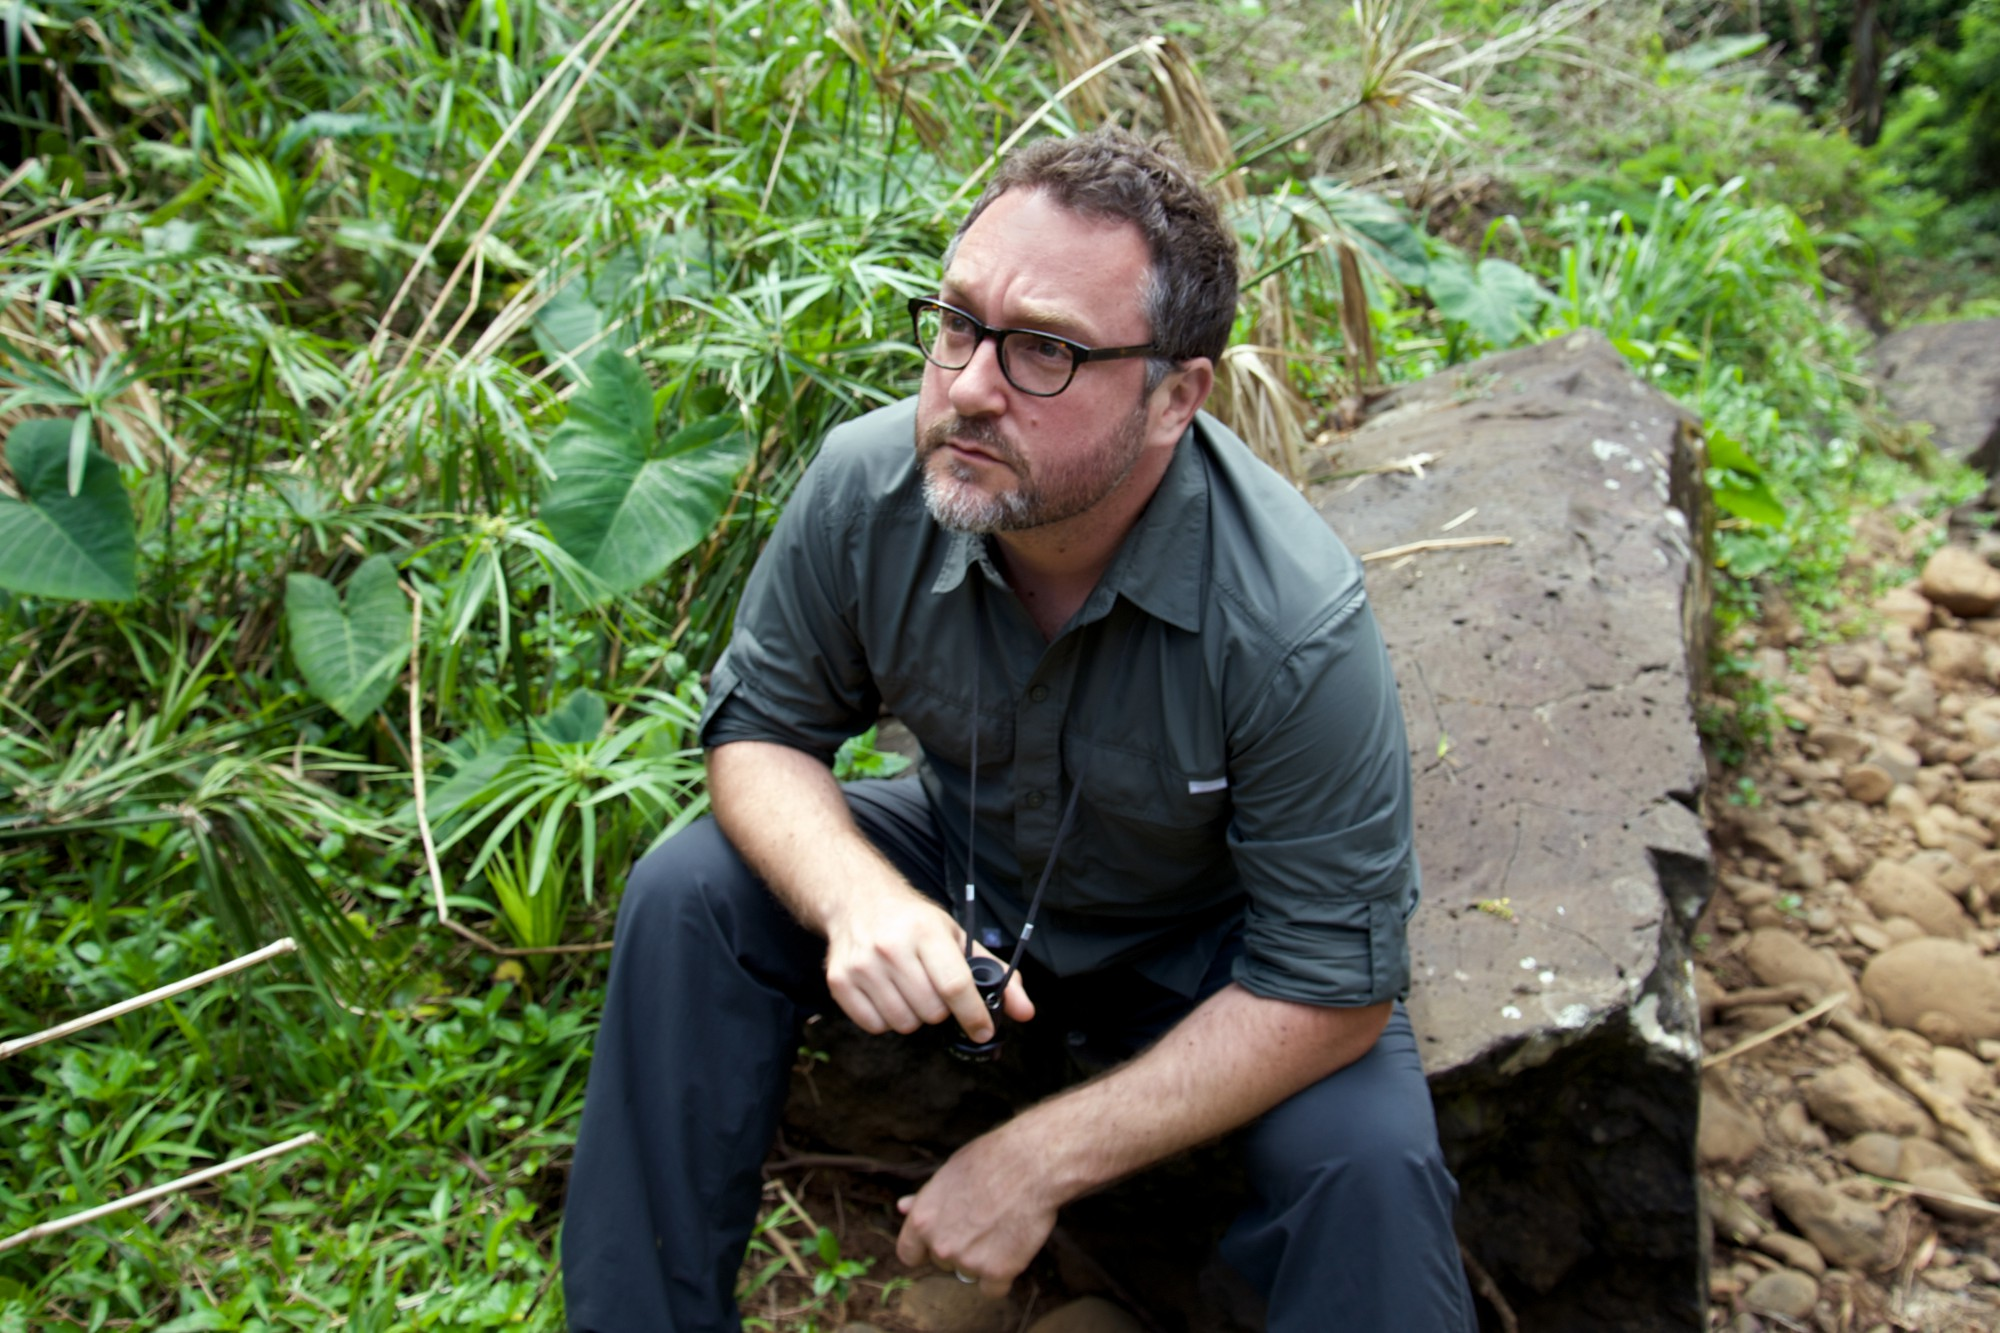 Director Colin Treverrow on the set of Jurassic World